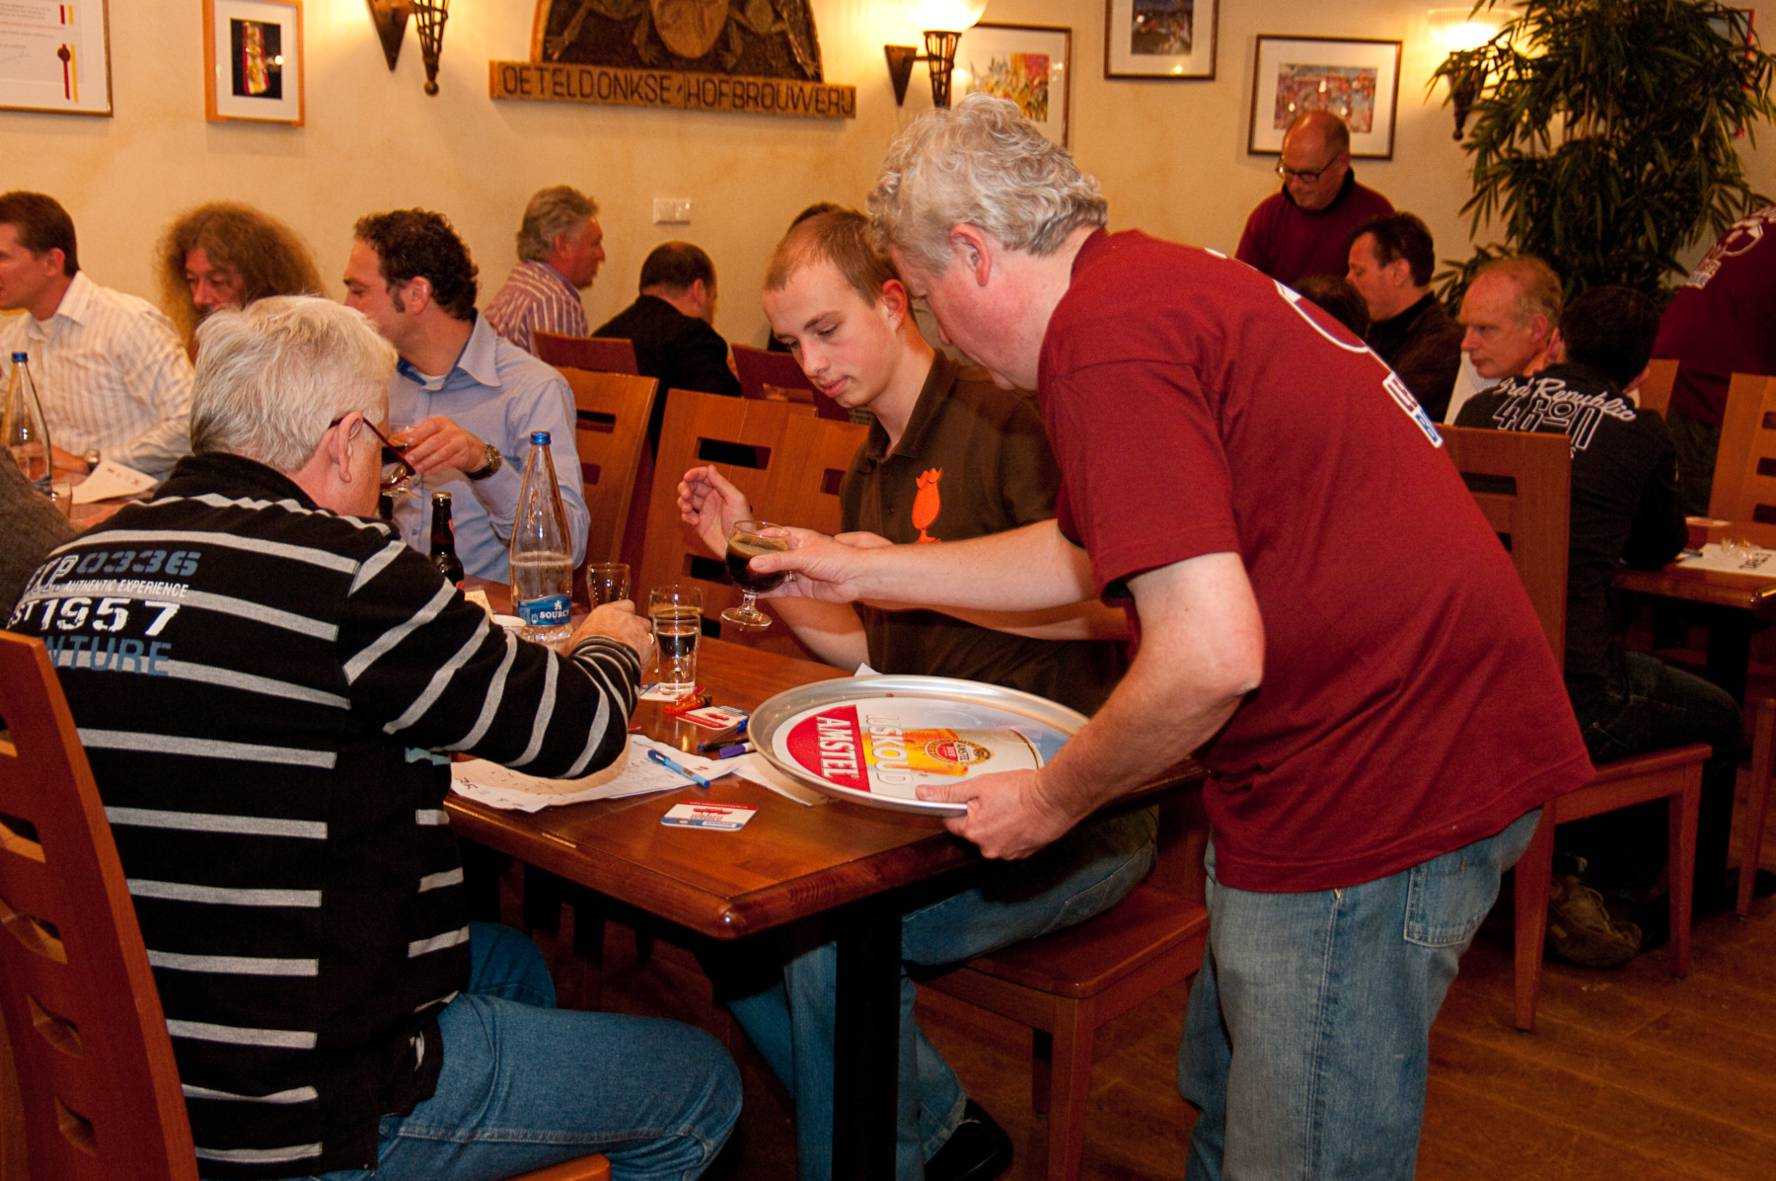 LekkersteBockBier2010 (101 of 172)